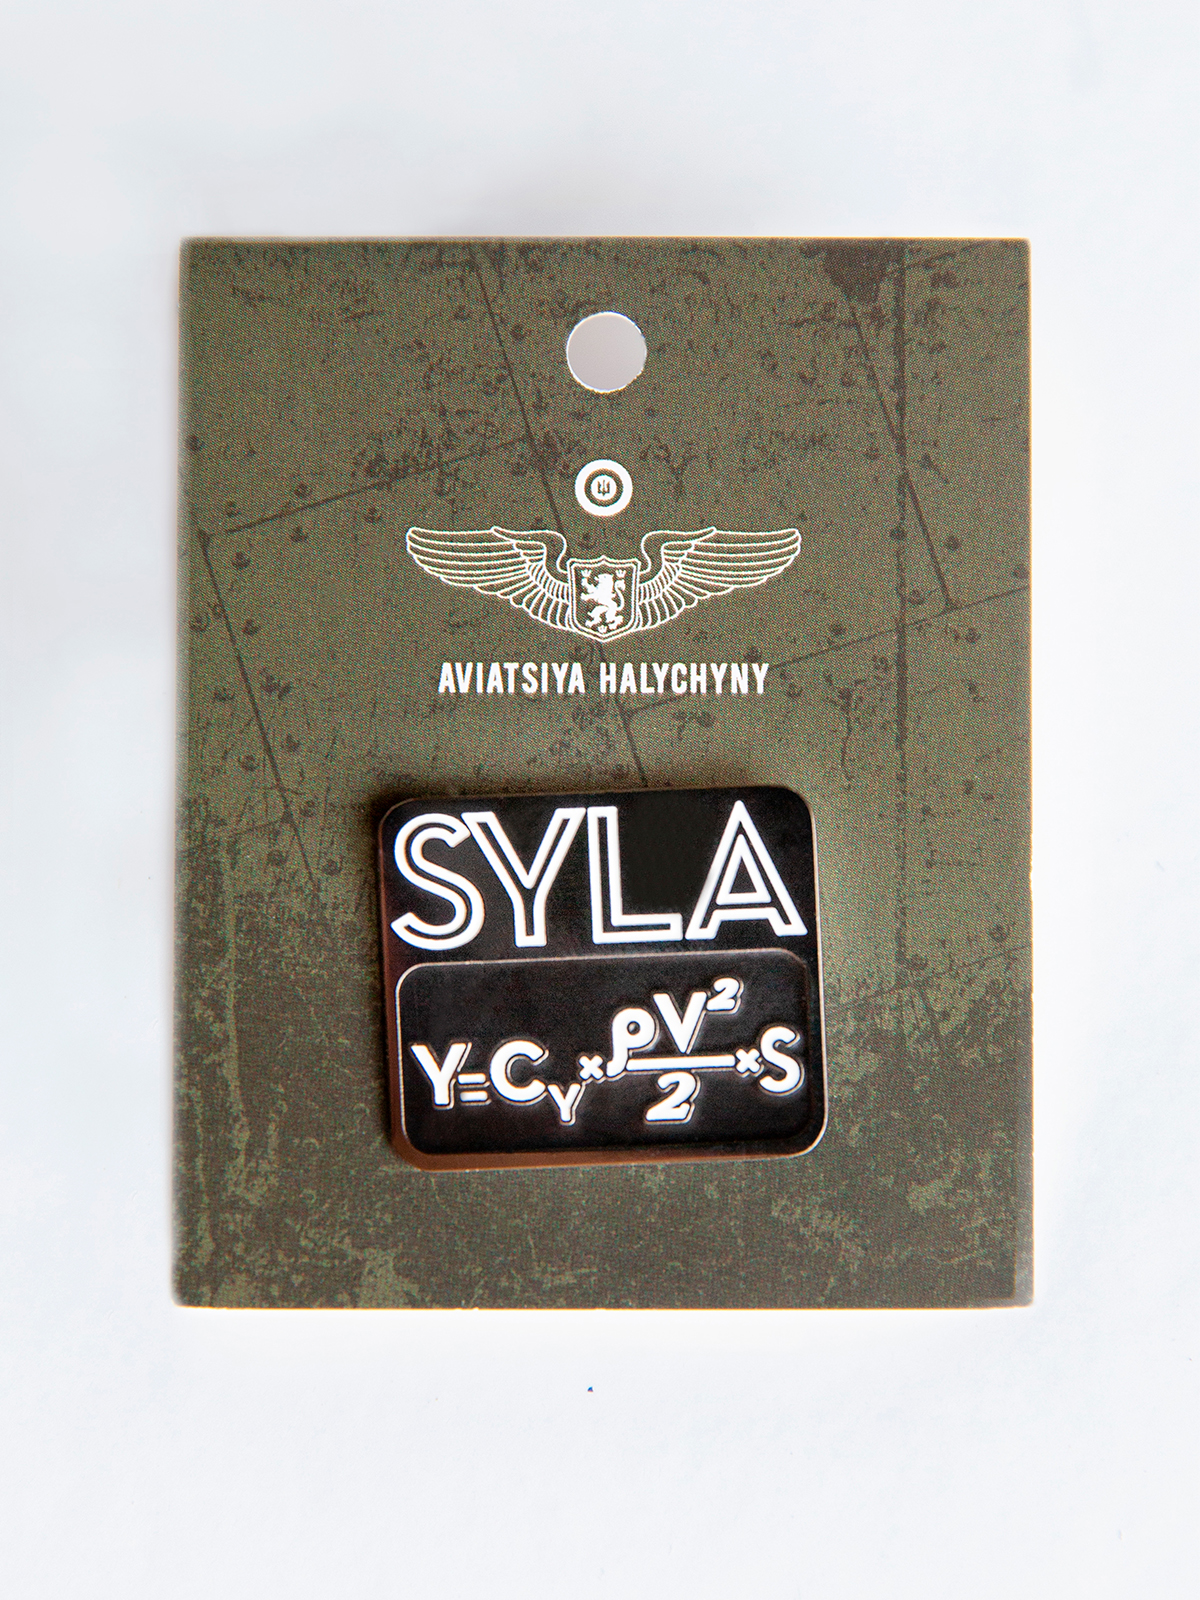 Pin Syla. Color black. Size: width 2,8 cm; height 2,4 cm Material: metal  .